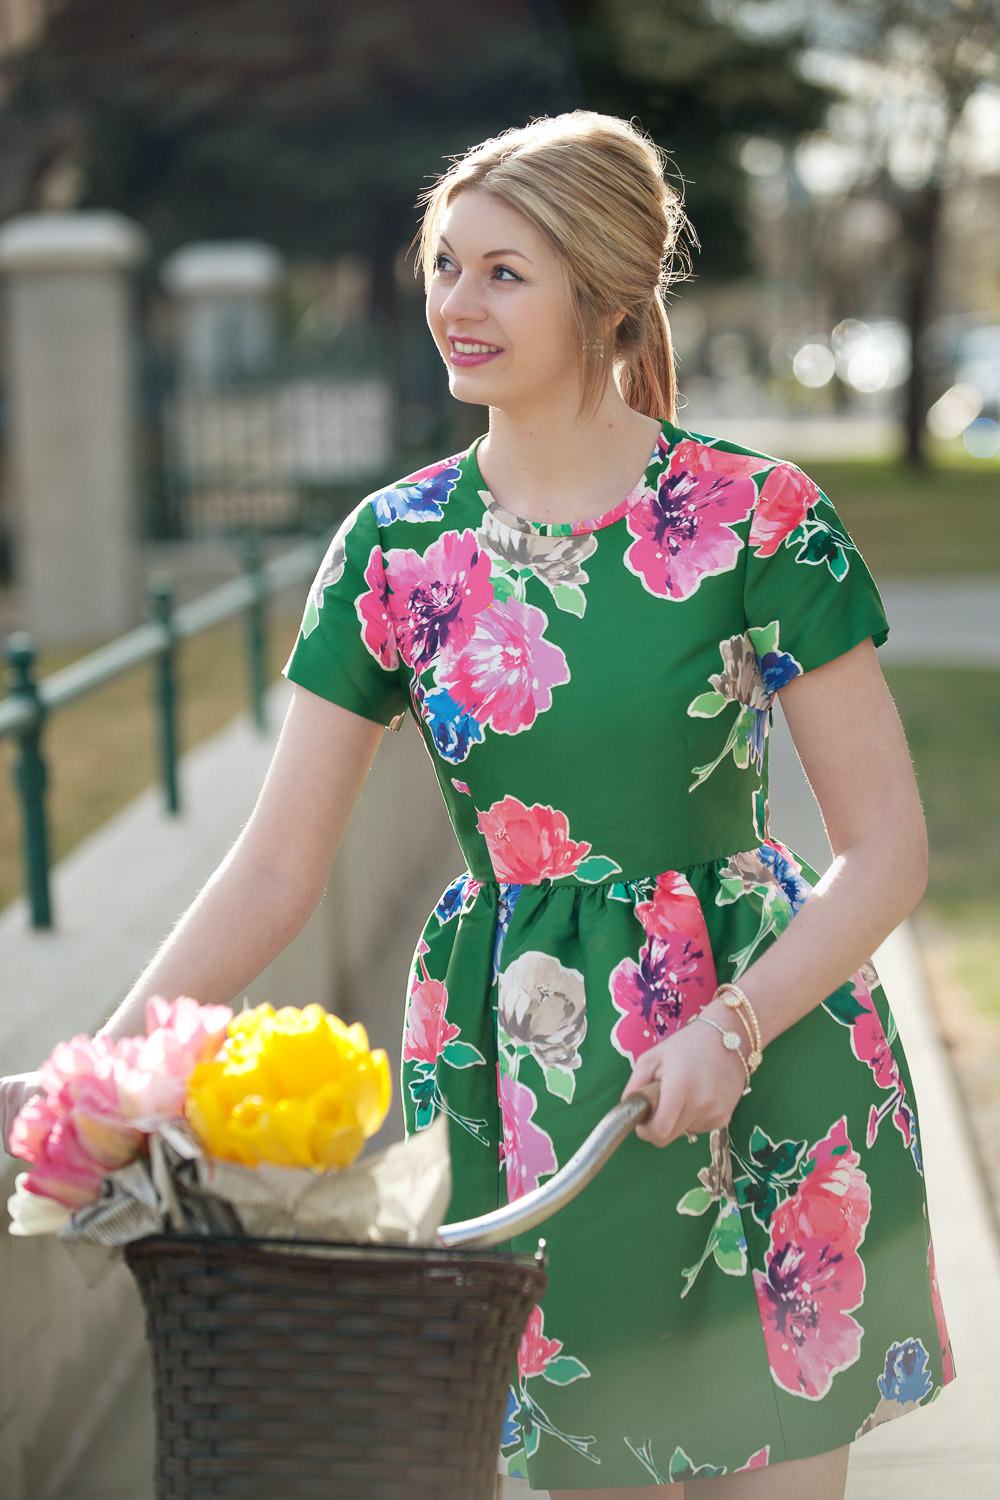 Ashley wearing Kate Spade captured by Calgary lifestyle photographer Tara Whittaker